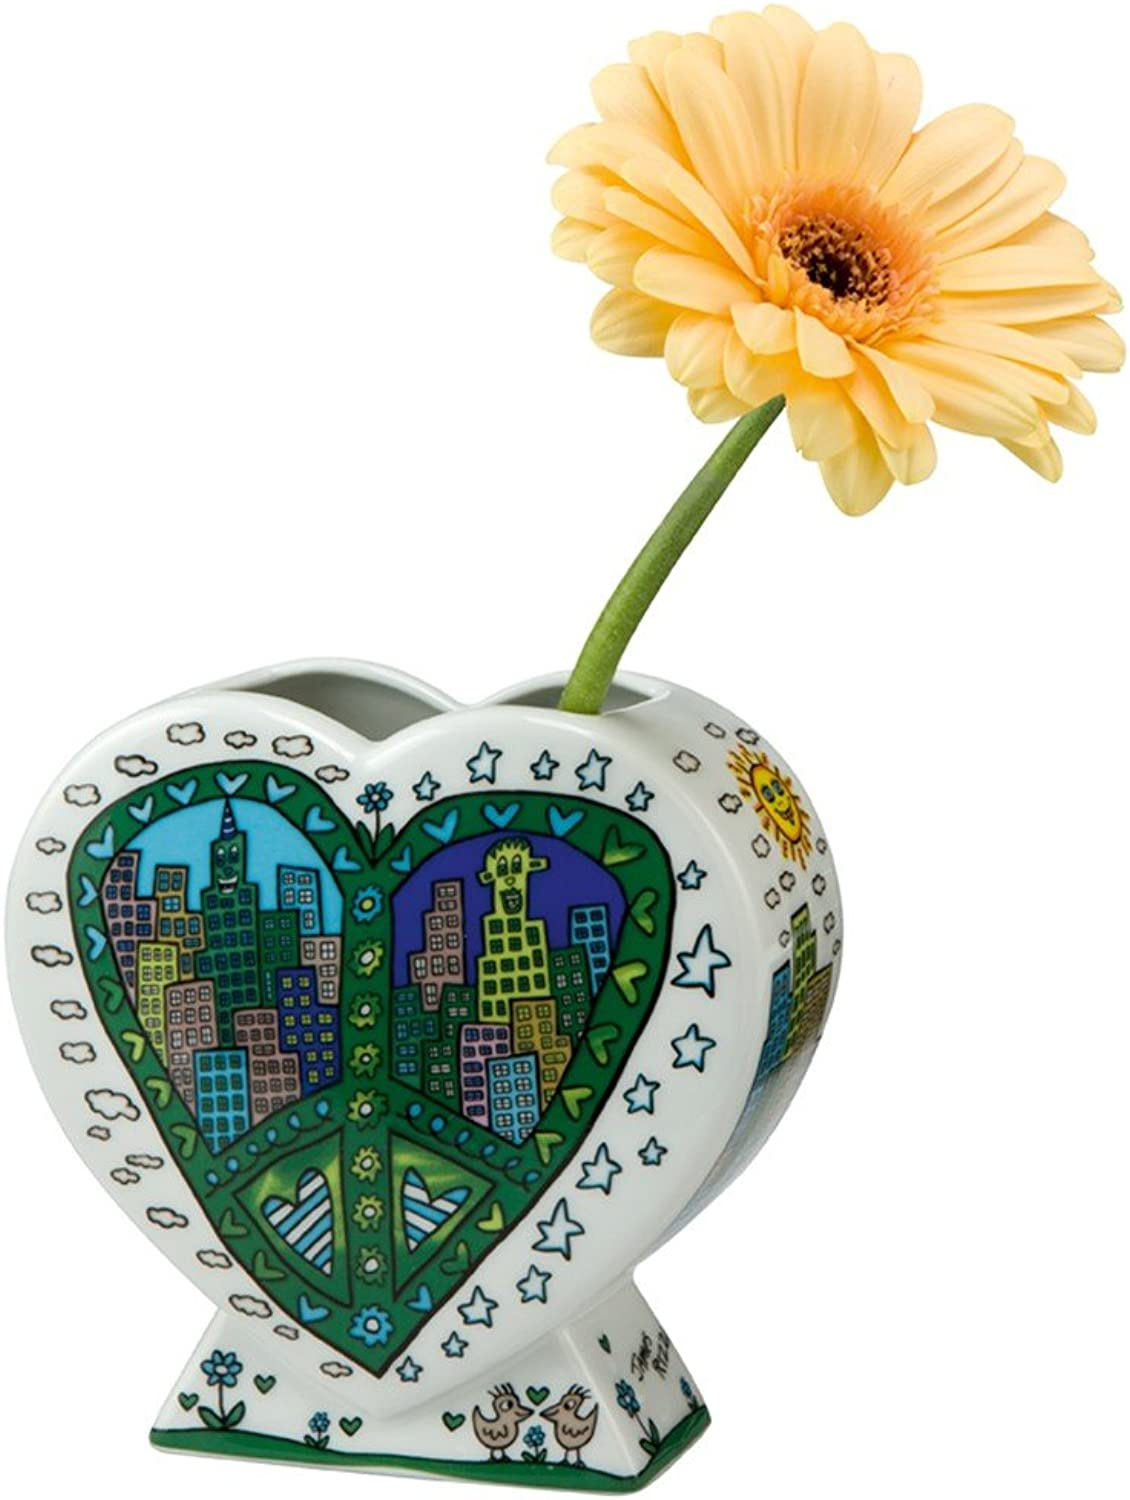 Goebel A Peace of My World Vase, Porzellan, bunt 13 x 6 x 12.5 cm B00I3IGWLW